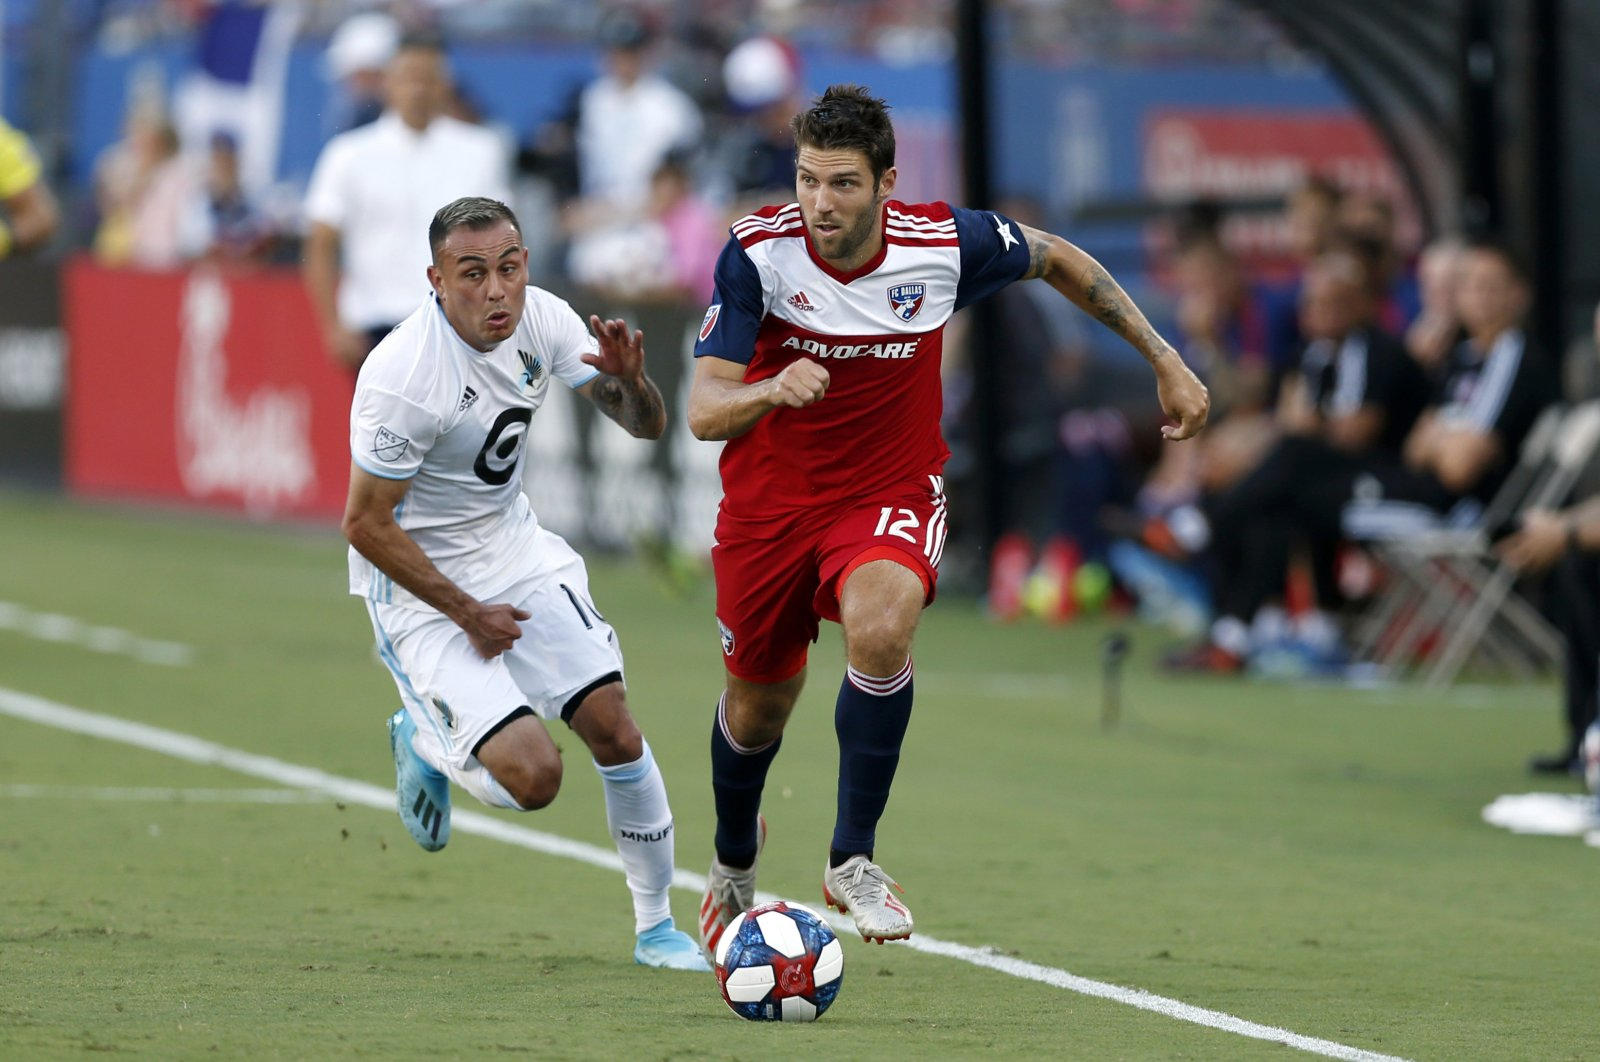 FC Dallas' Ryan Hollingshead dribbles past Minnesota United's Miguel Ibarra during an MLS match in Frisco, Texas, U.S., Aug. 10, 2019. (AP Photo)